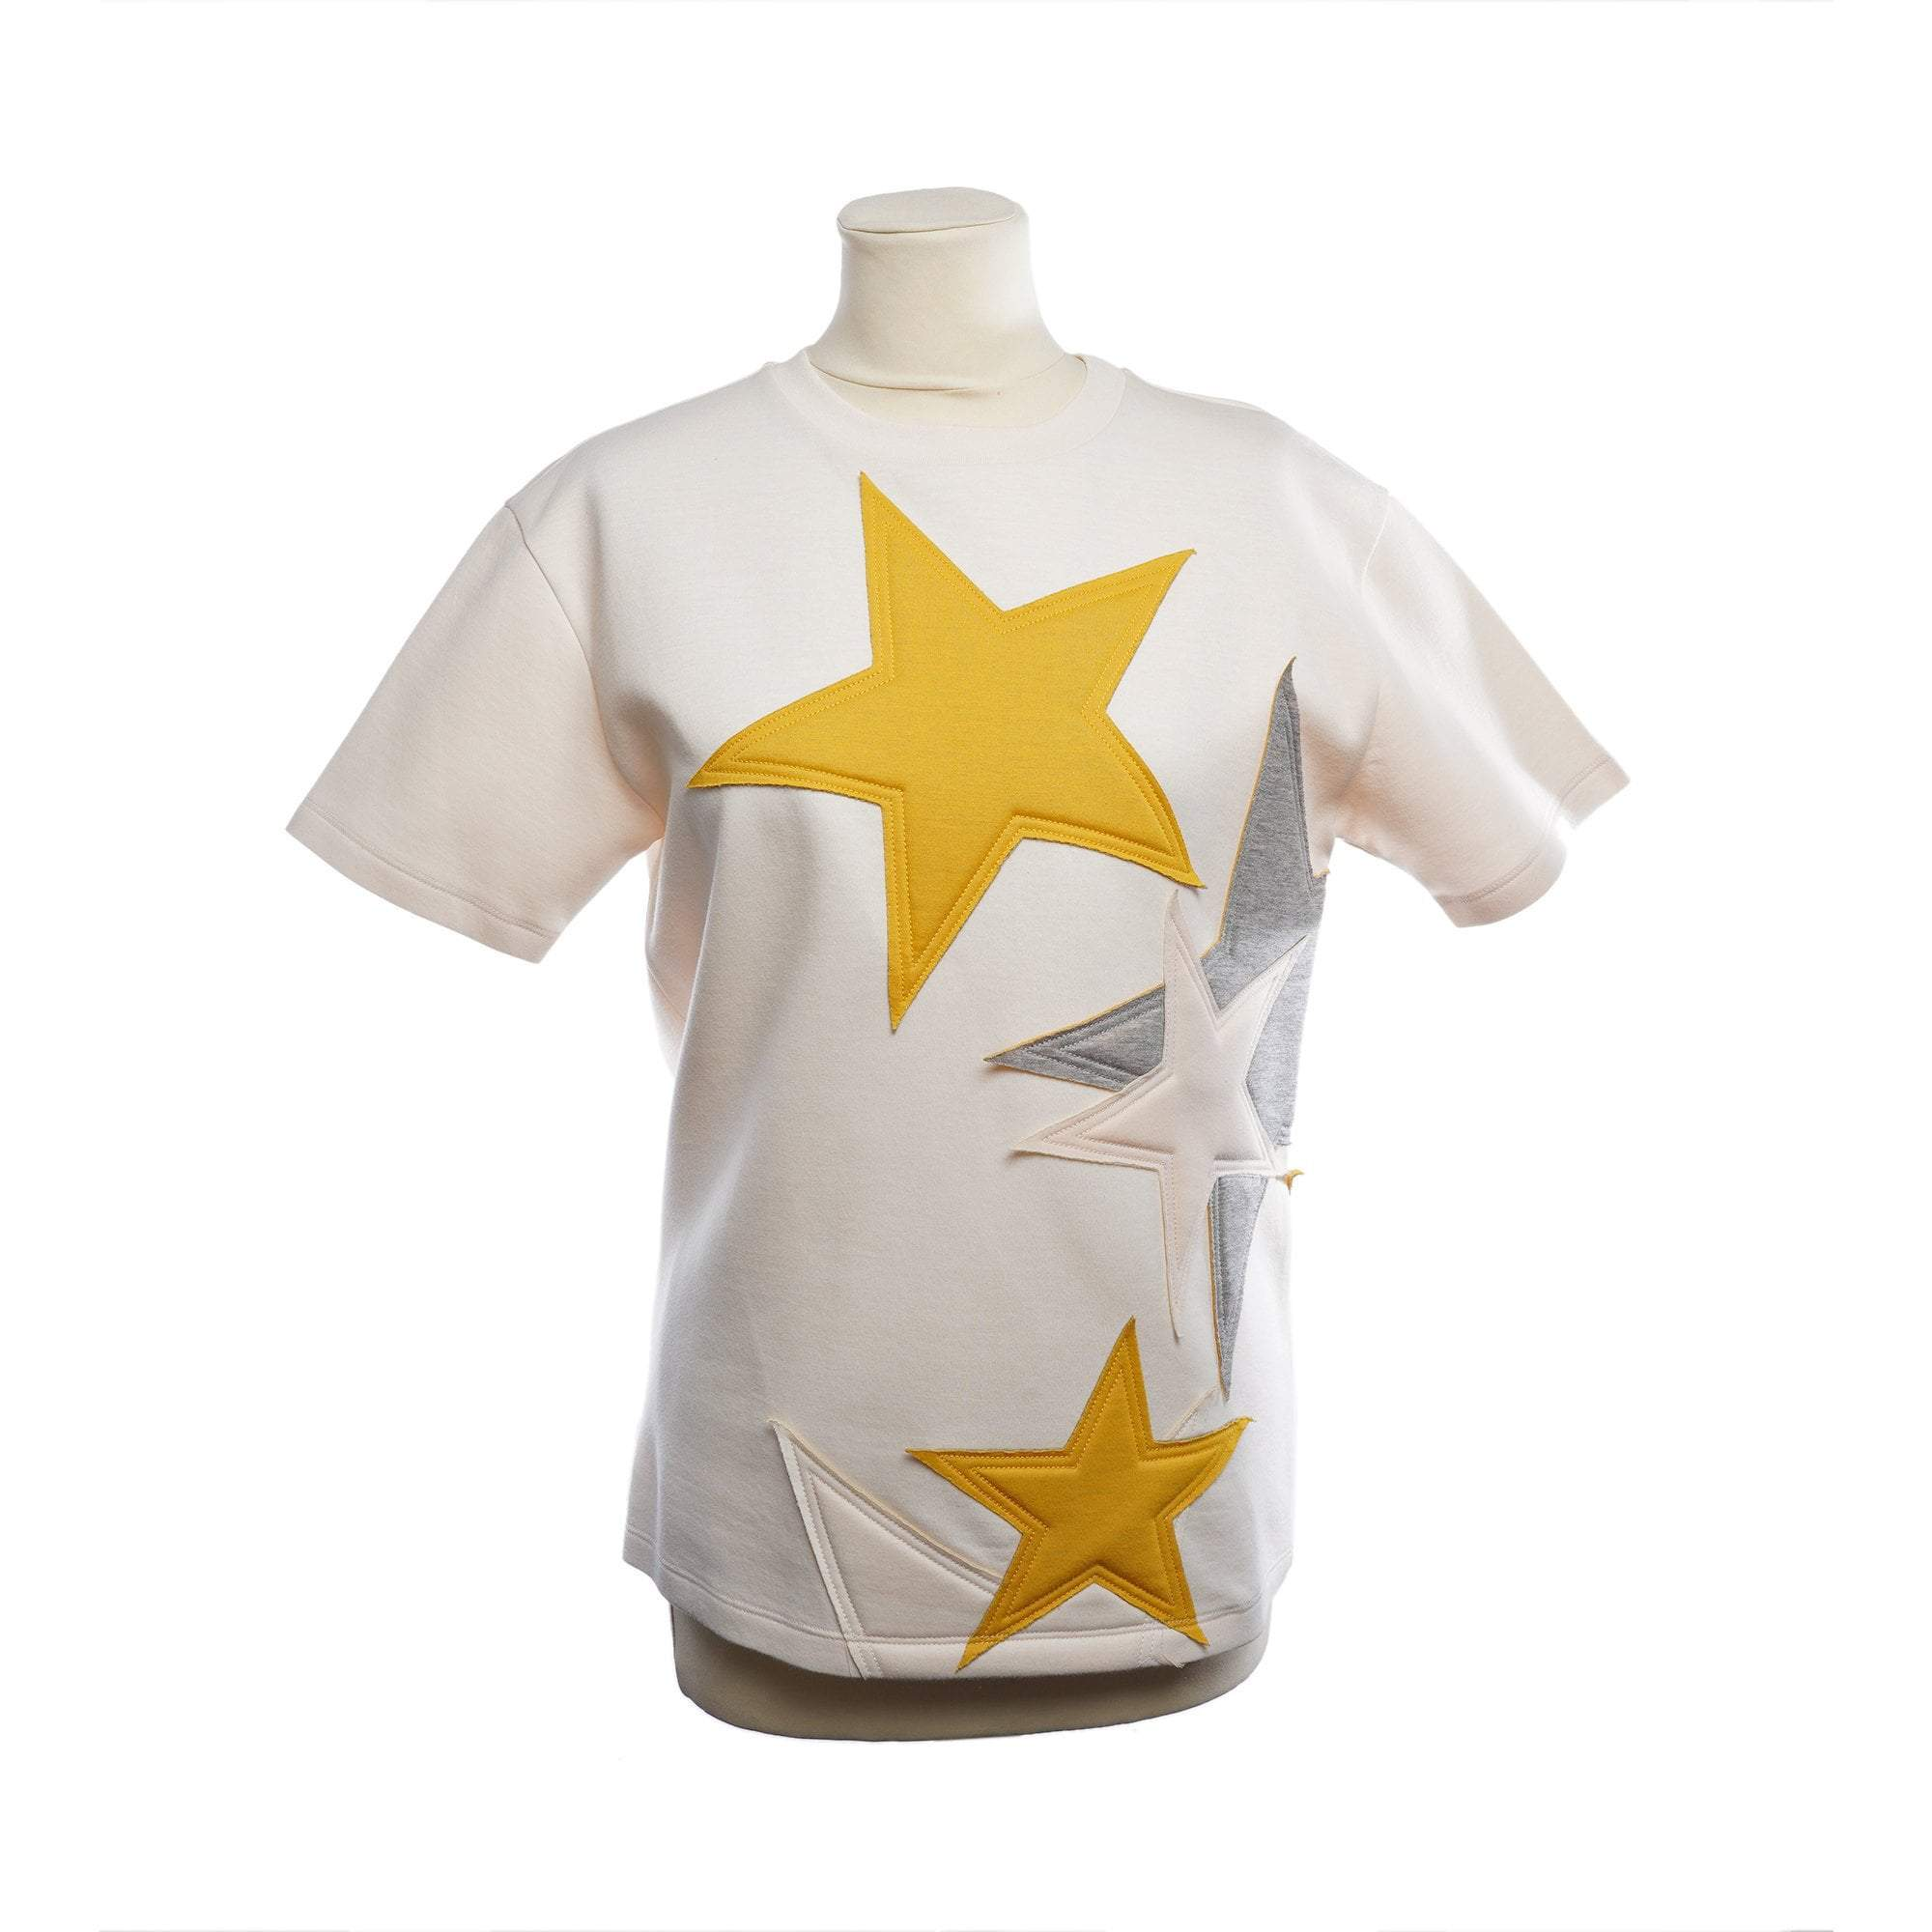 Stella Mccartney Star Patches T-Shirt